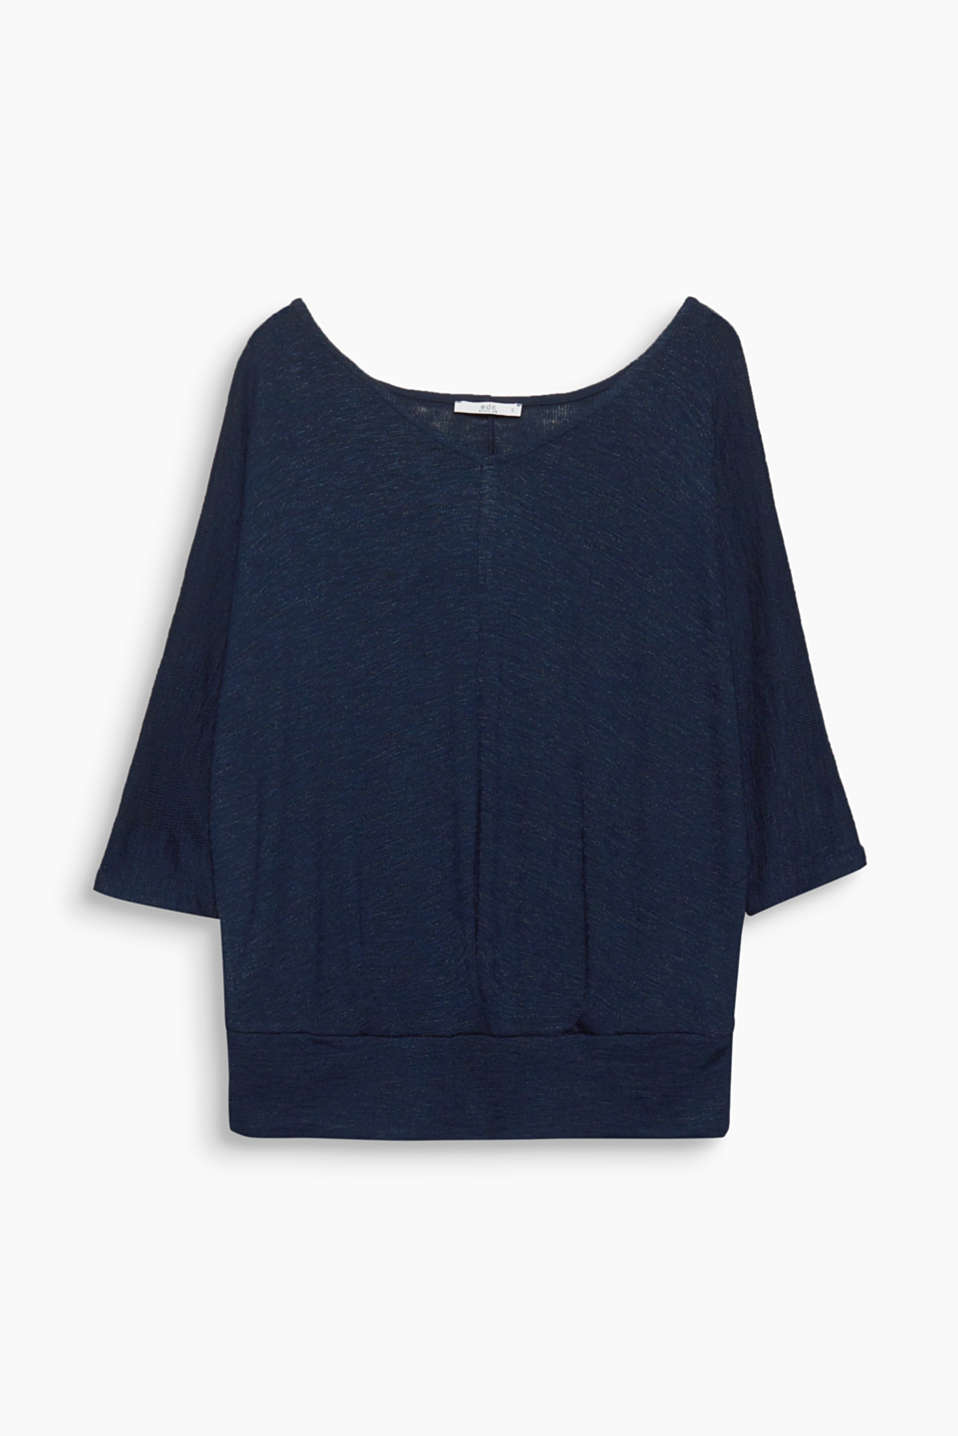 Feminine and sporty at the same time! This loose jumper stands out thanks to its batwing sleeves and hem borders.